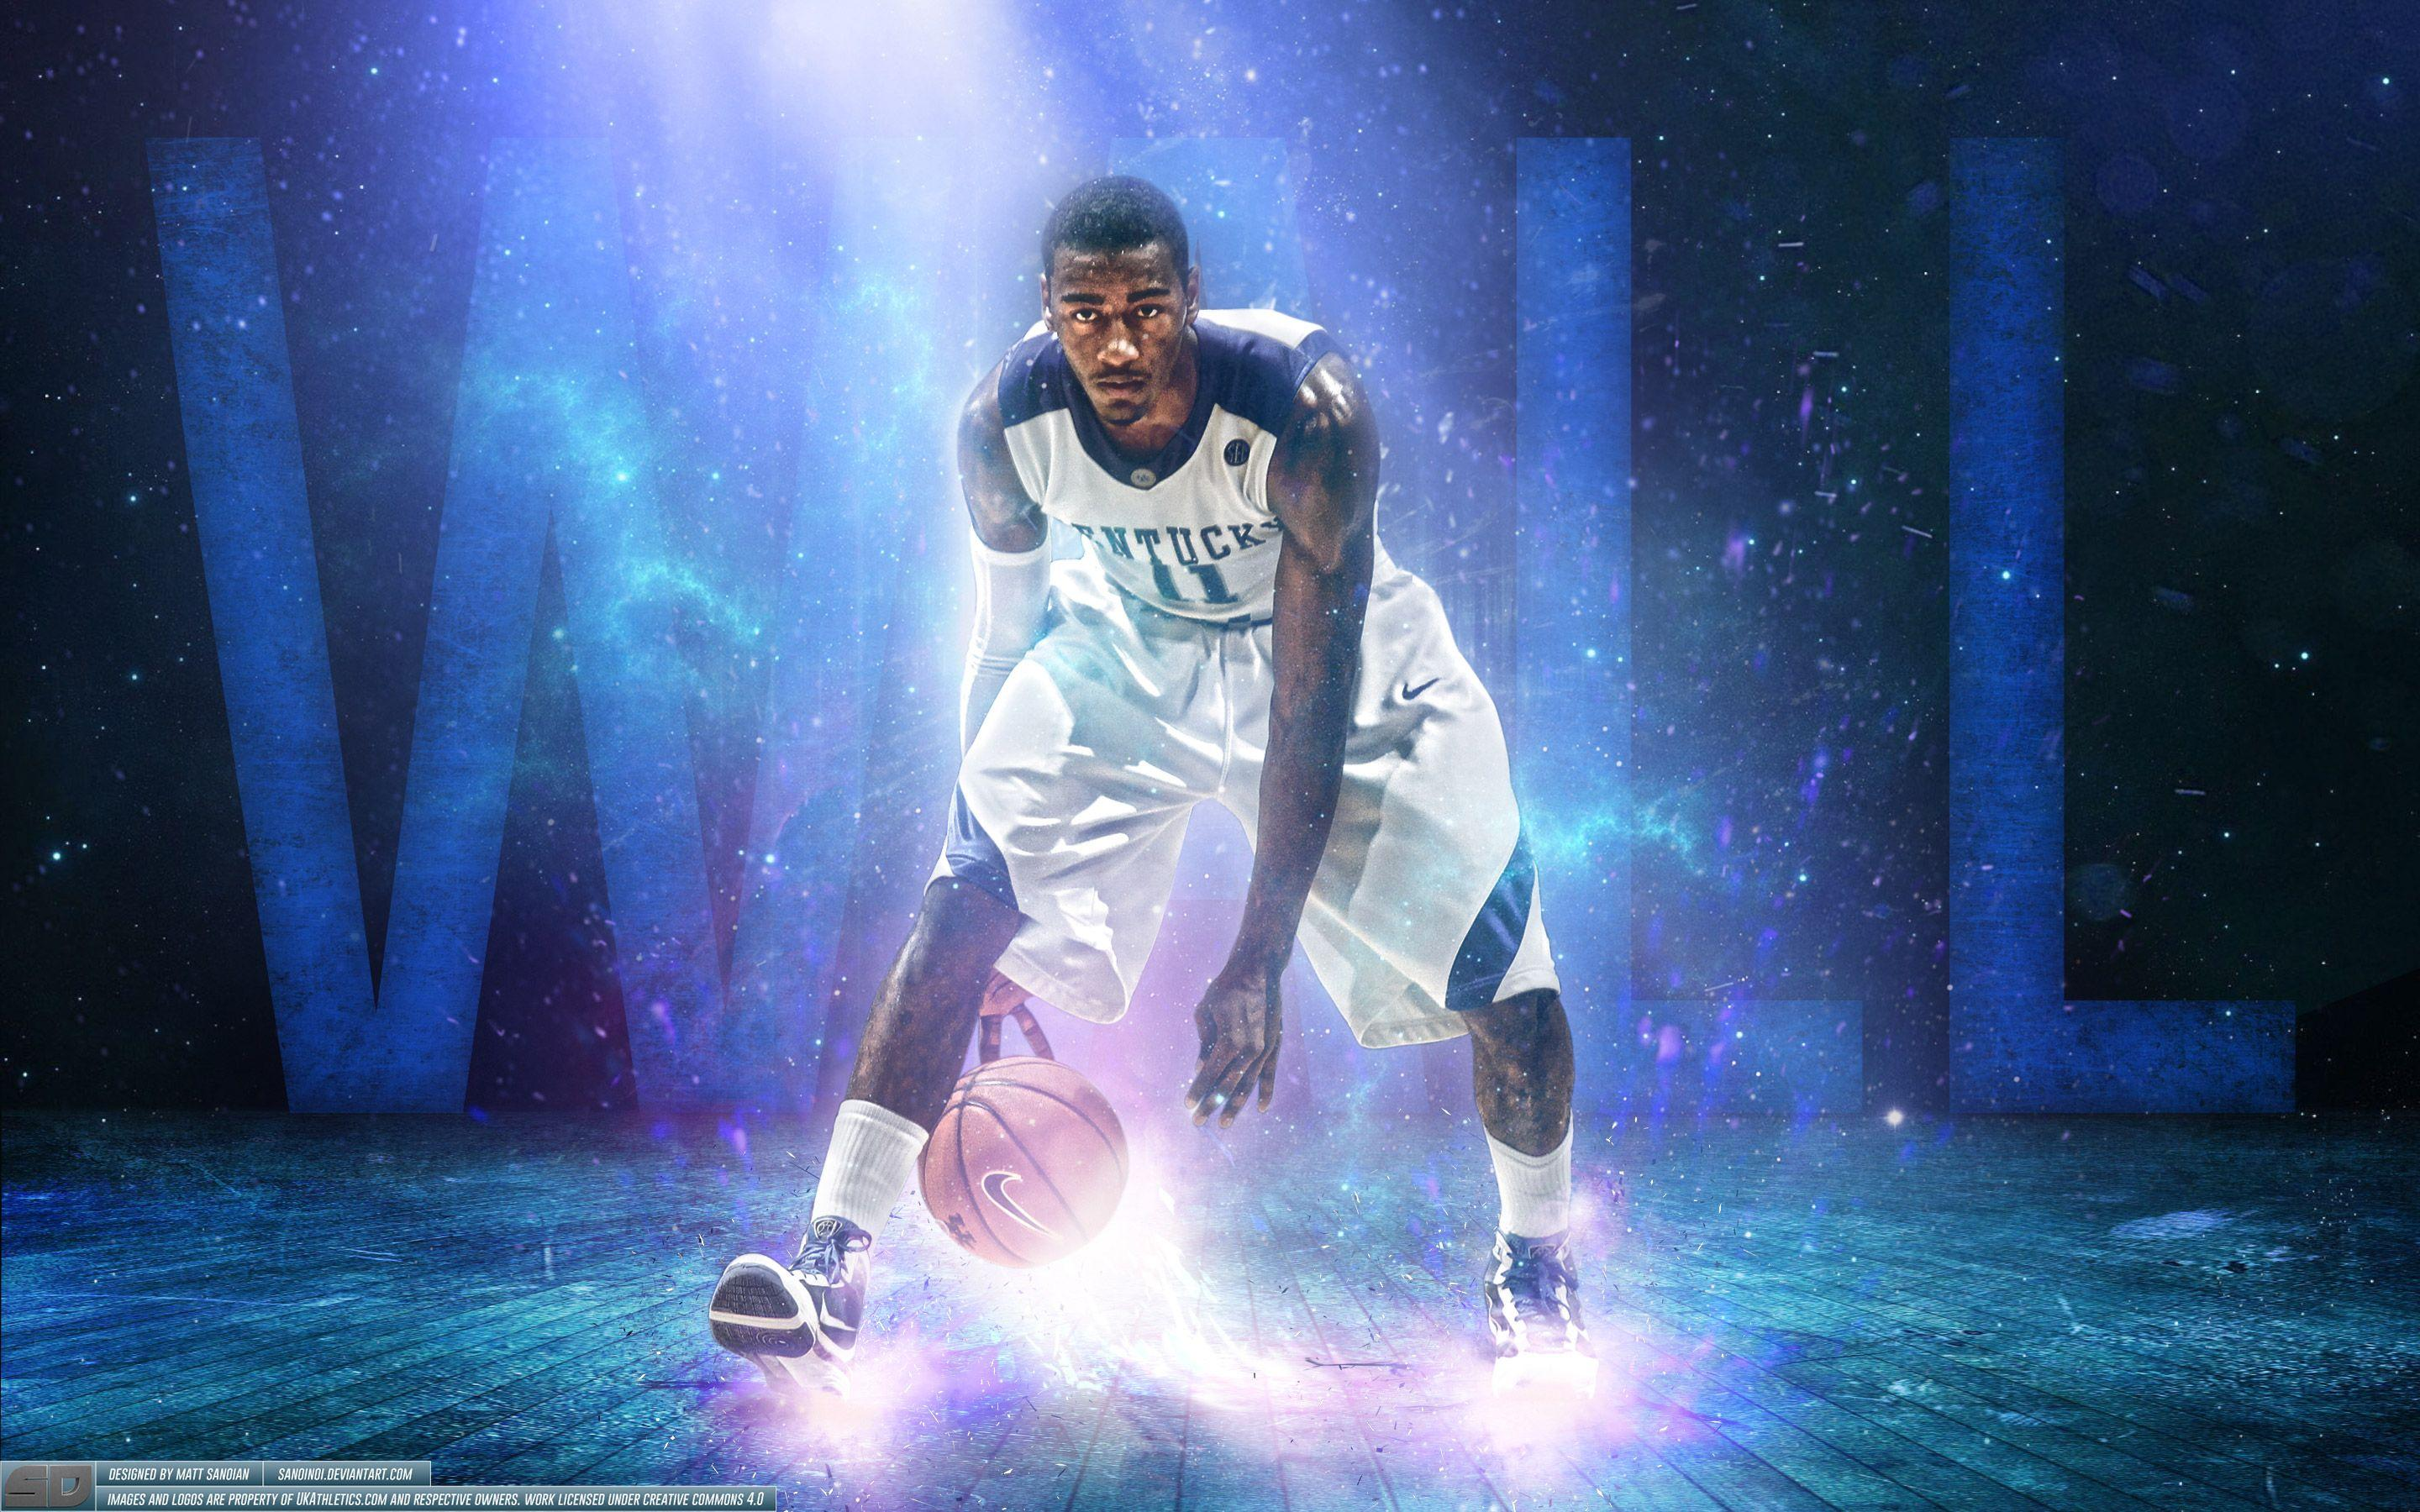 John Wall Kentucky Wildcats Wallpaper | Basketball Wallpapers at ...